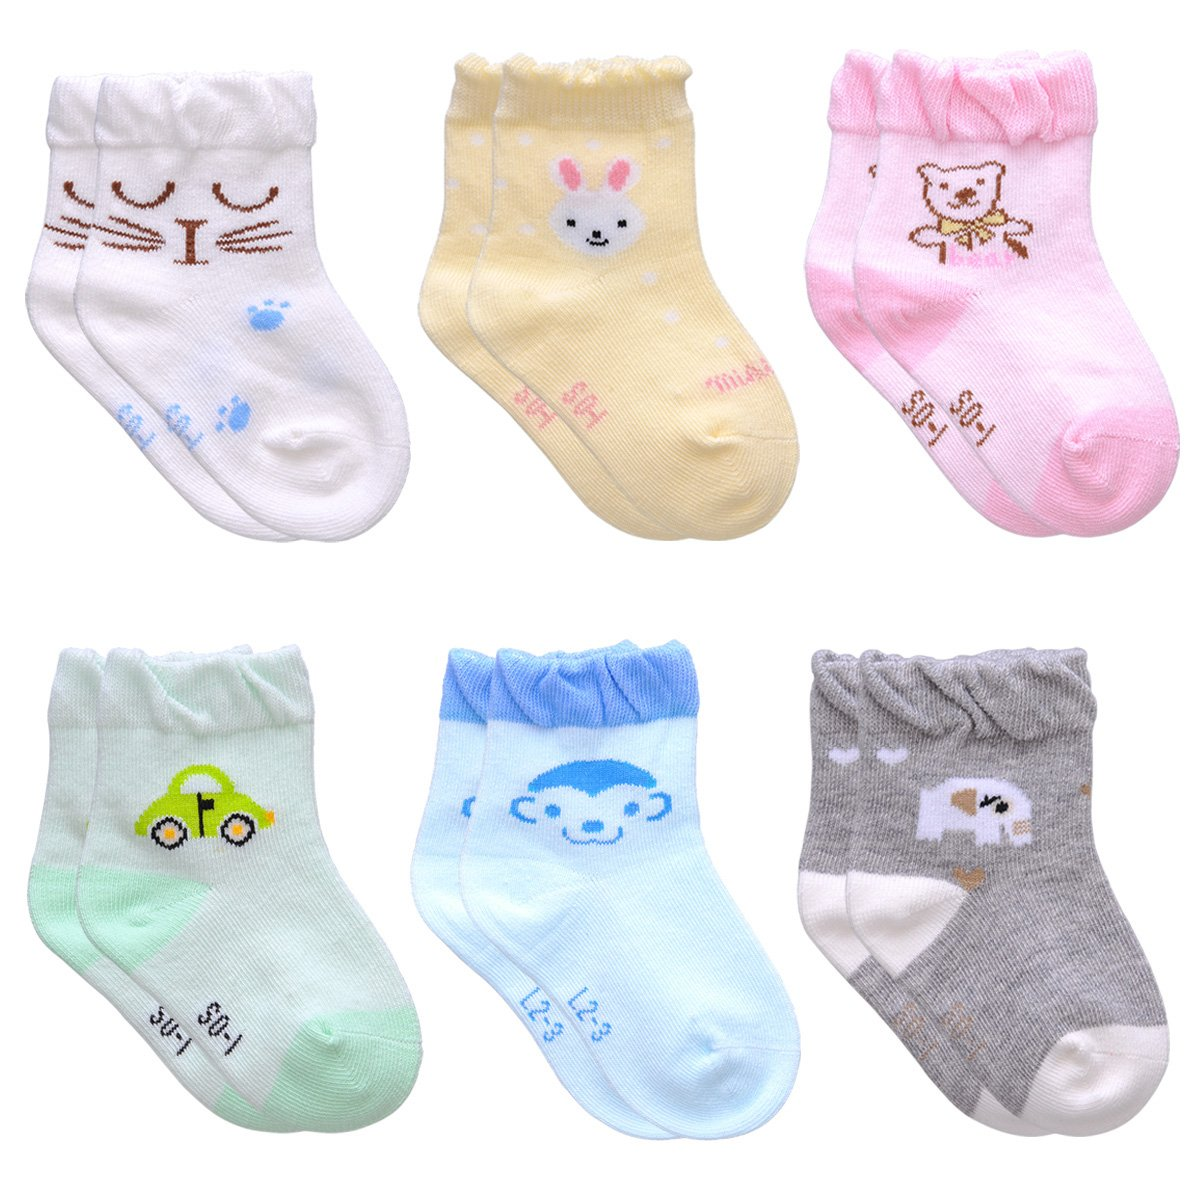 Kids Baby Toddler Socks Non-Skid Handmade Cotton Crew Walkers Unisex EZ